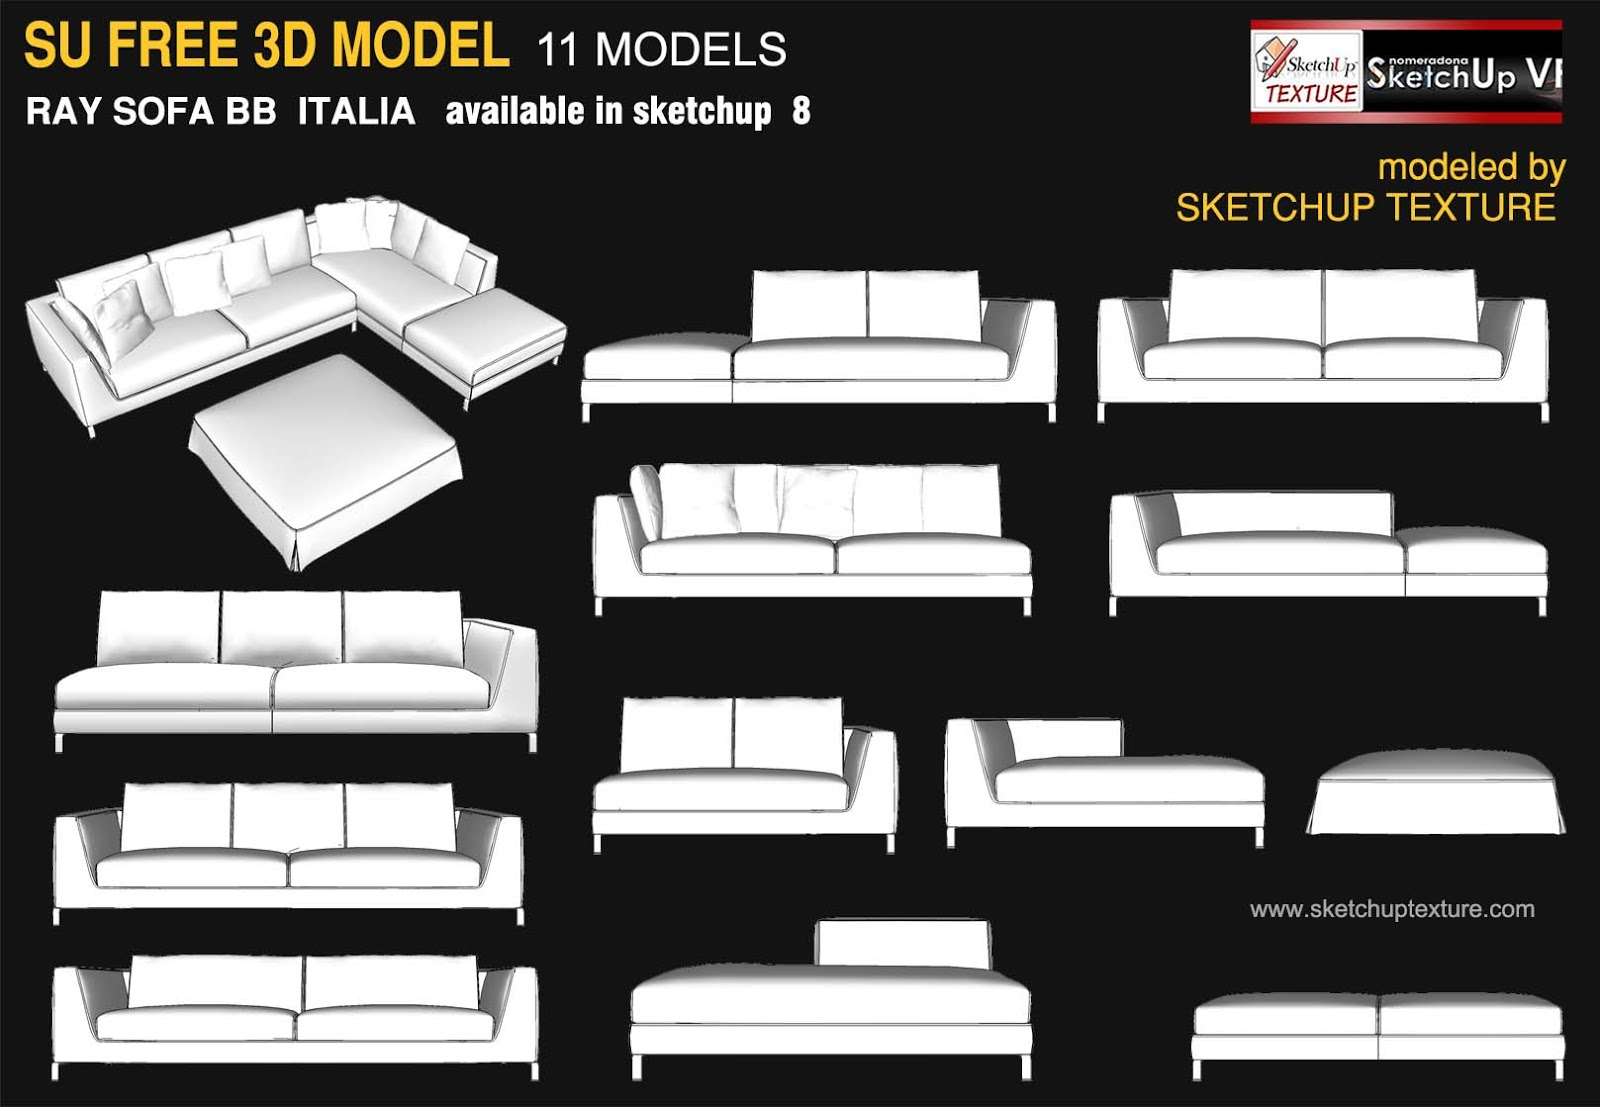 awesome black living room 3d model | SKETCHUP TEXTURE: SKETCHUP MODEL LIVING ROOM